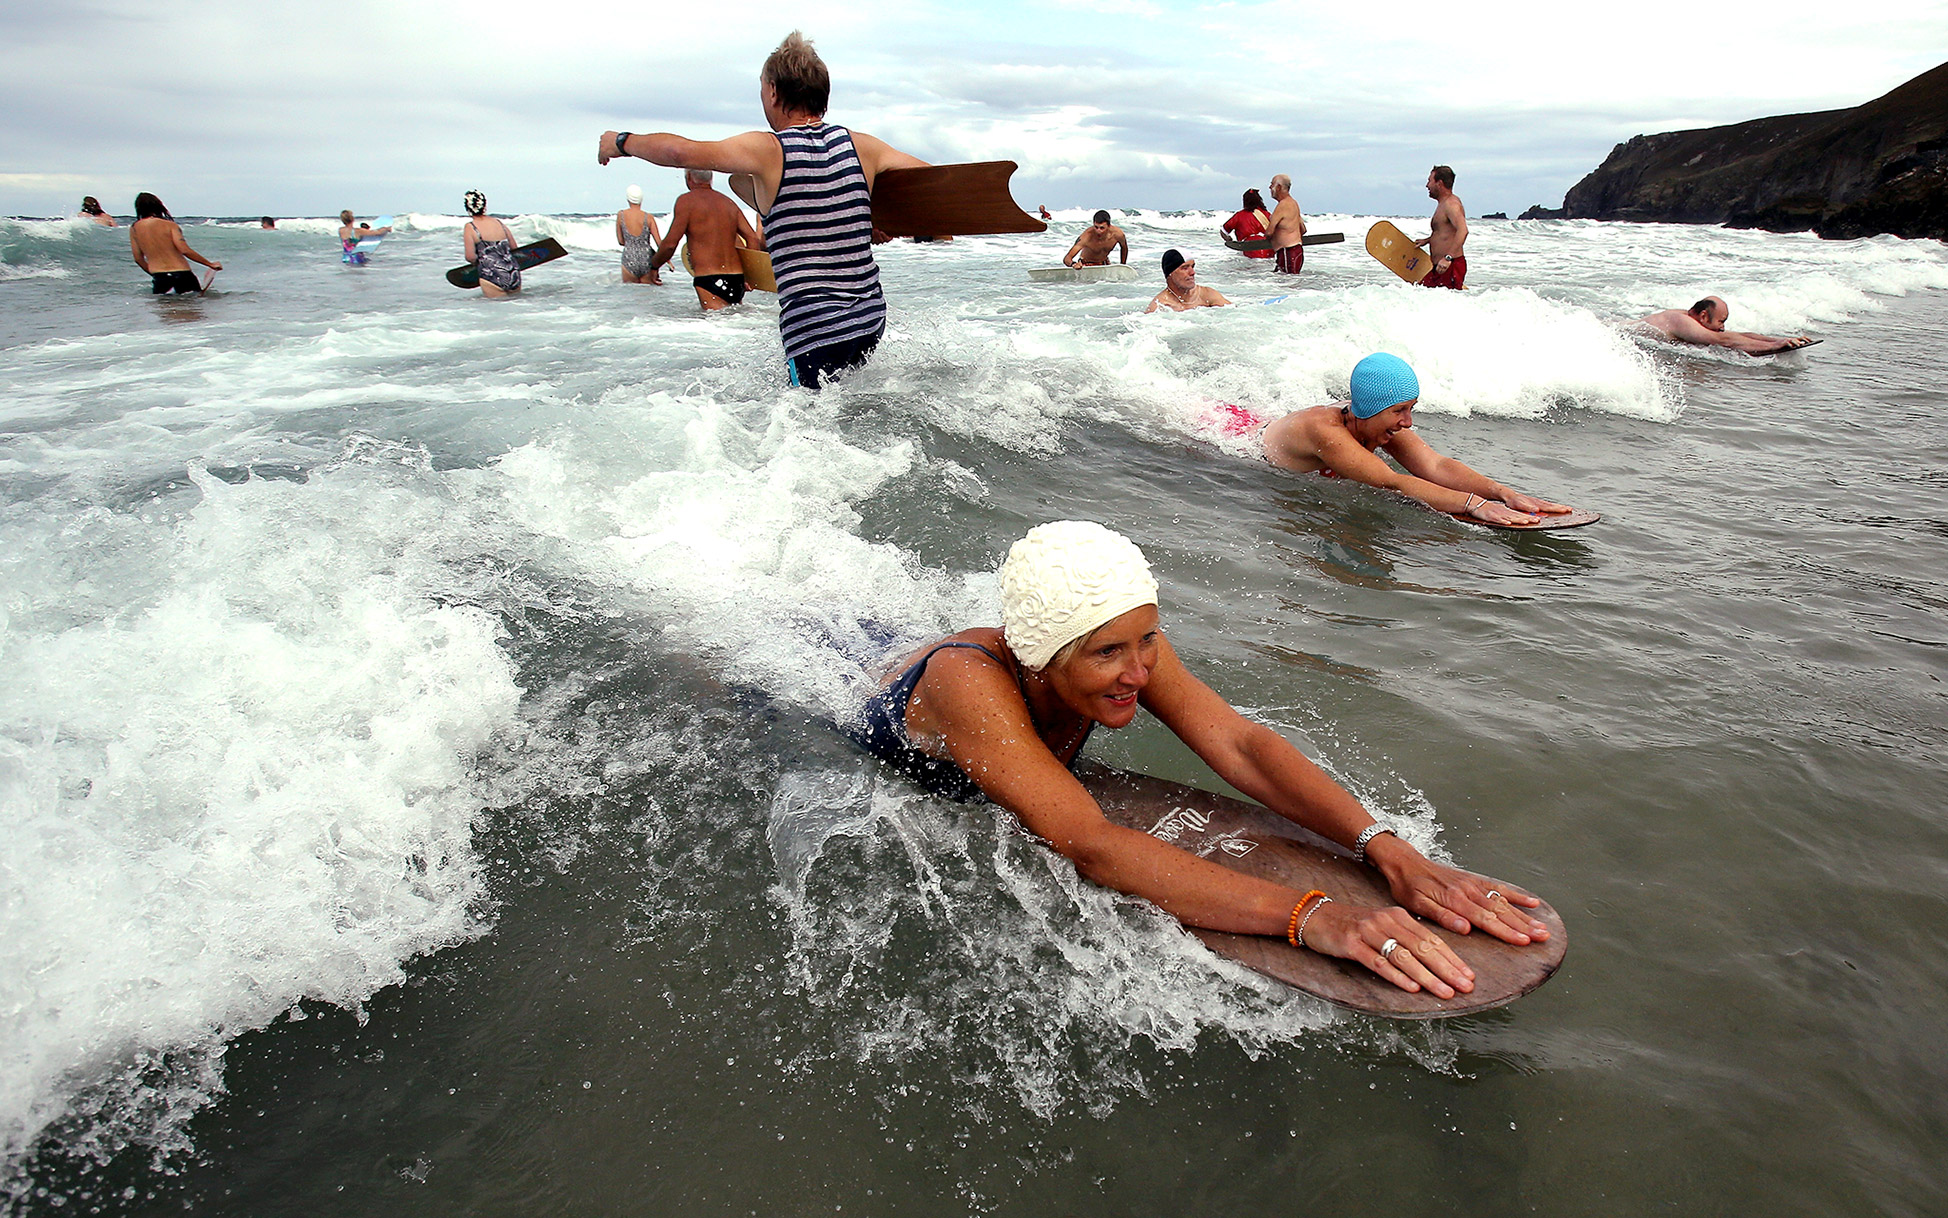 World Belly Boarding Championships